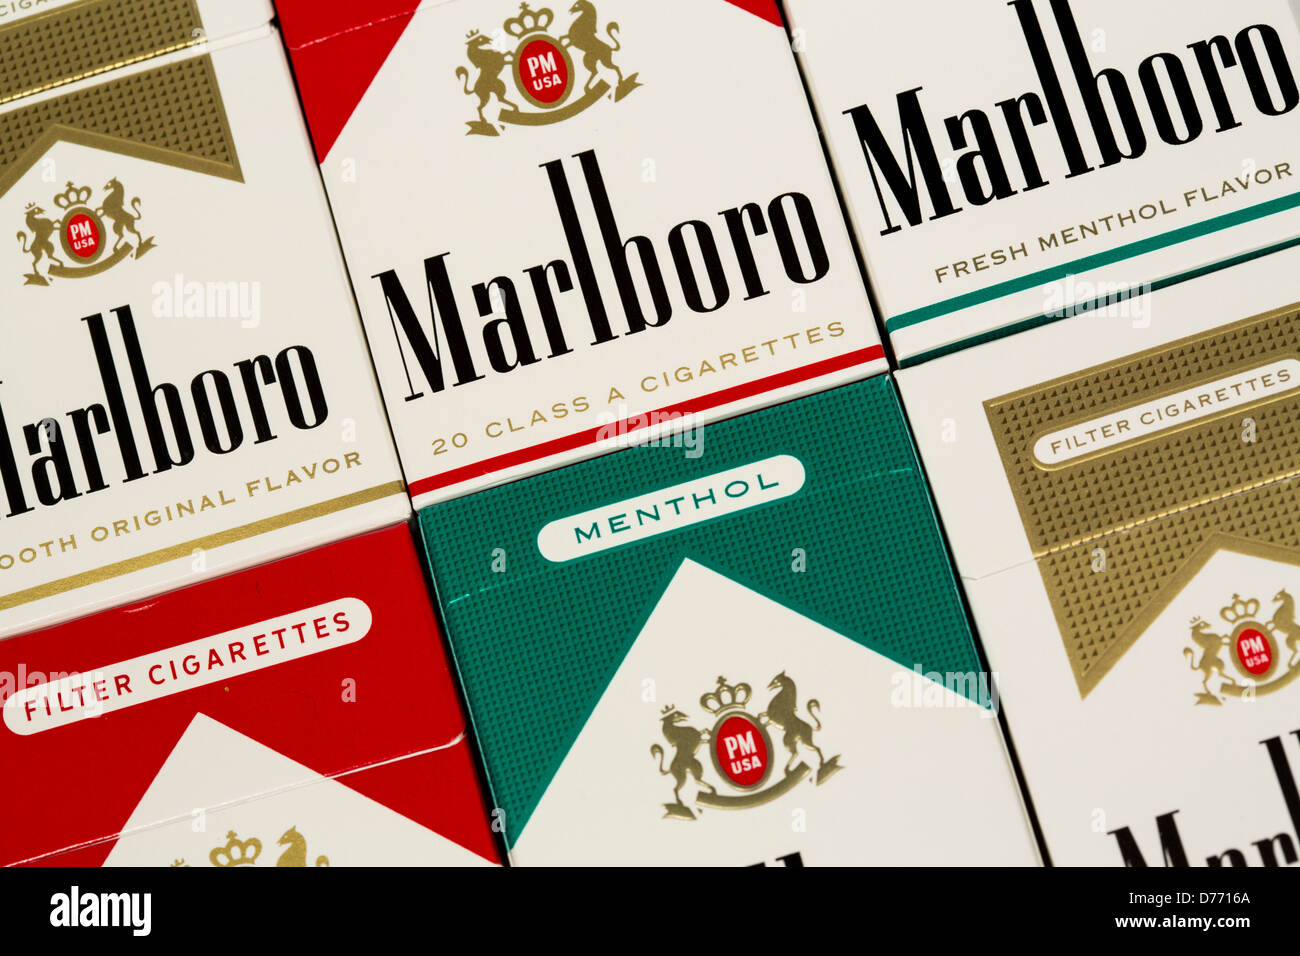 Marlboro cigarette price Berkeley